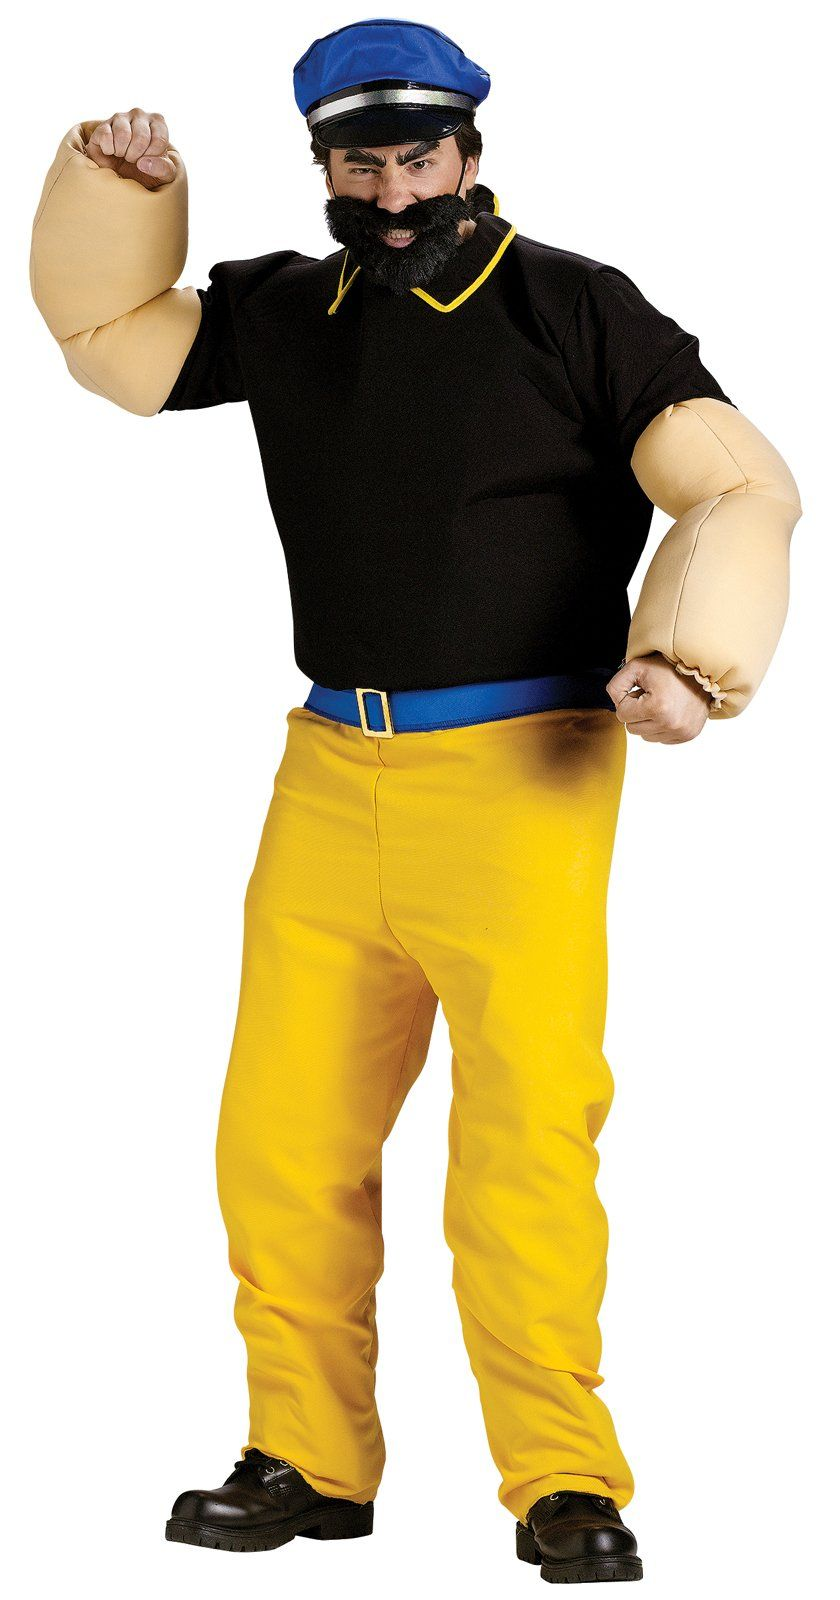 Brutus (or Bluto, depending on who you ask) from #Popeye